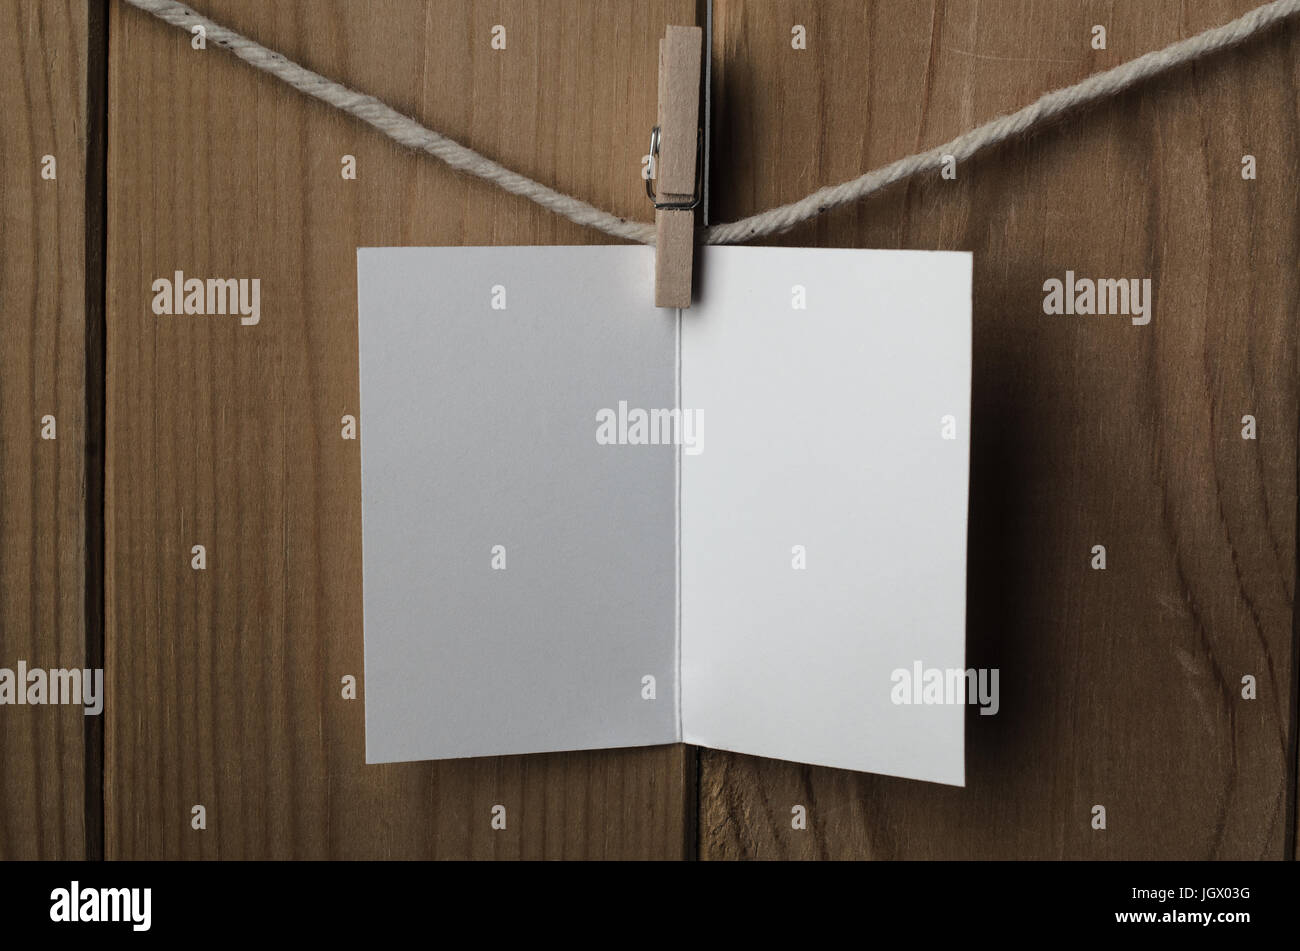 An opened, blank, plain white greetings or Christmas card, pegged to string against wood plank background. - Stock Image